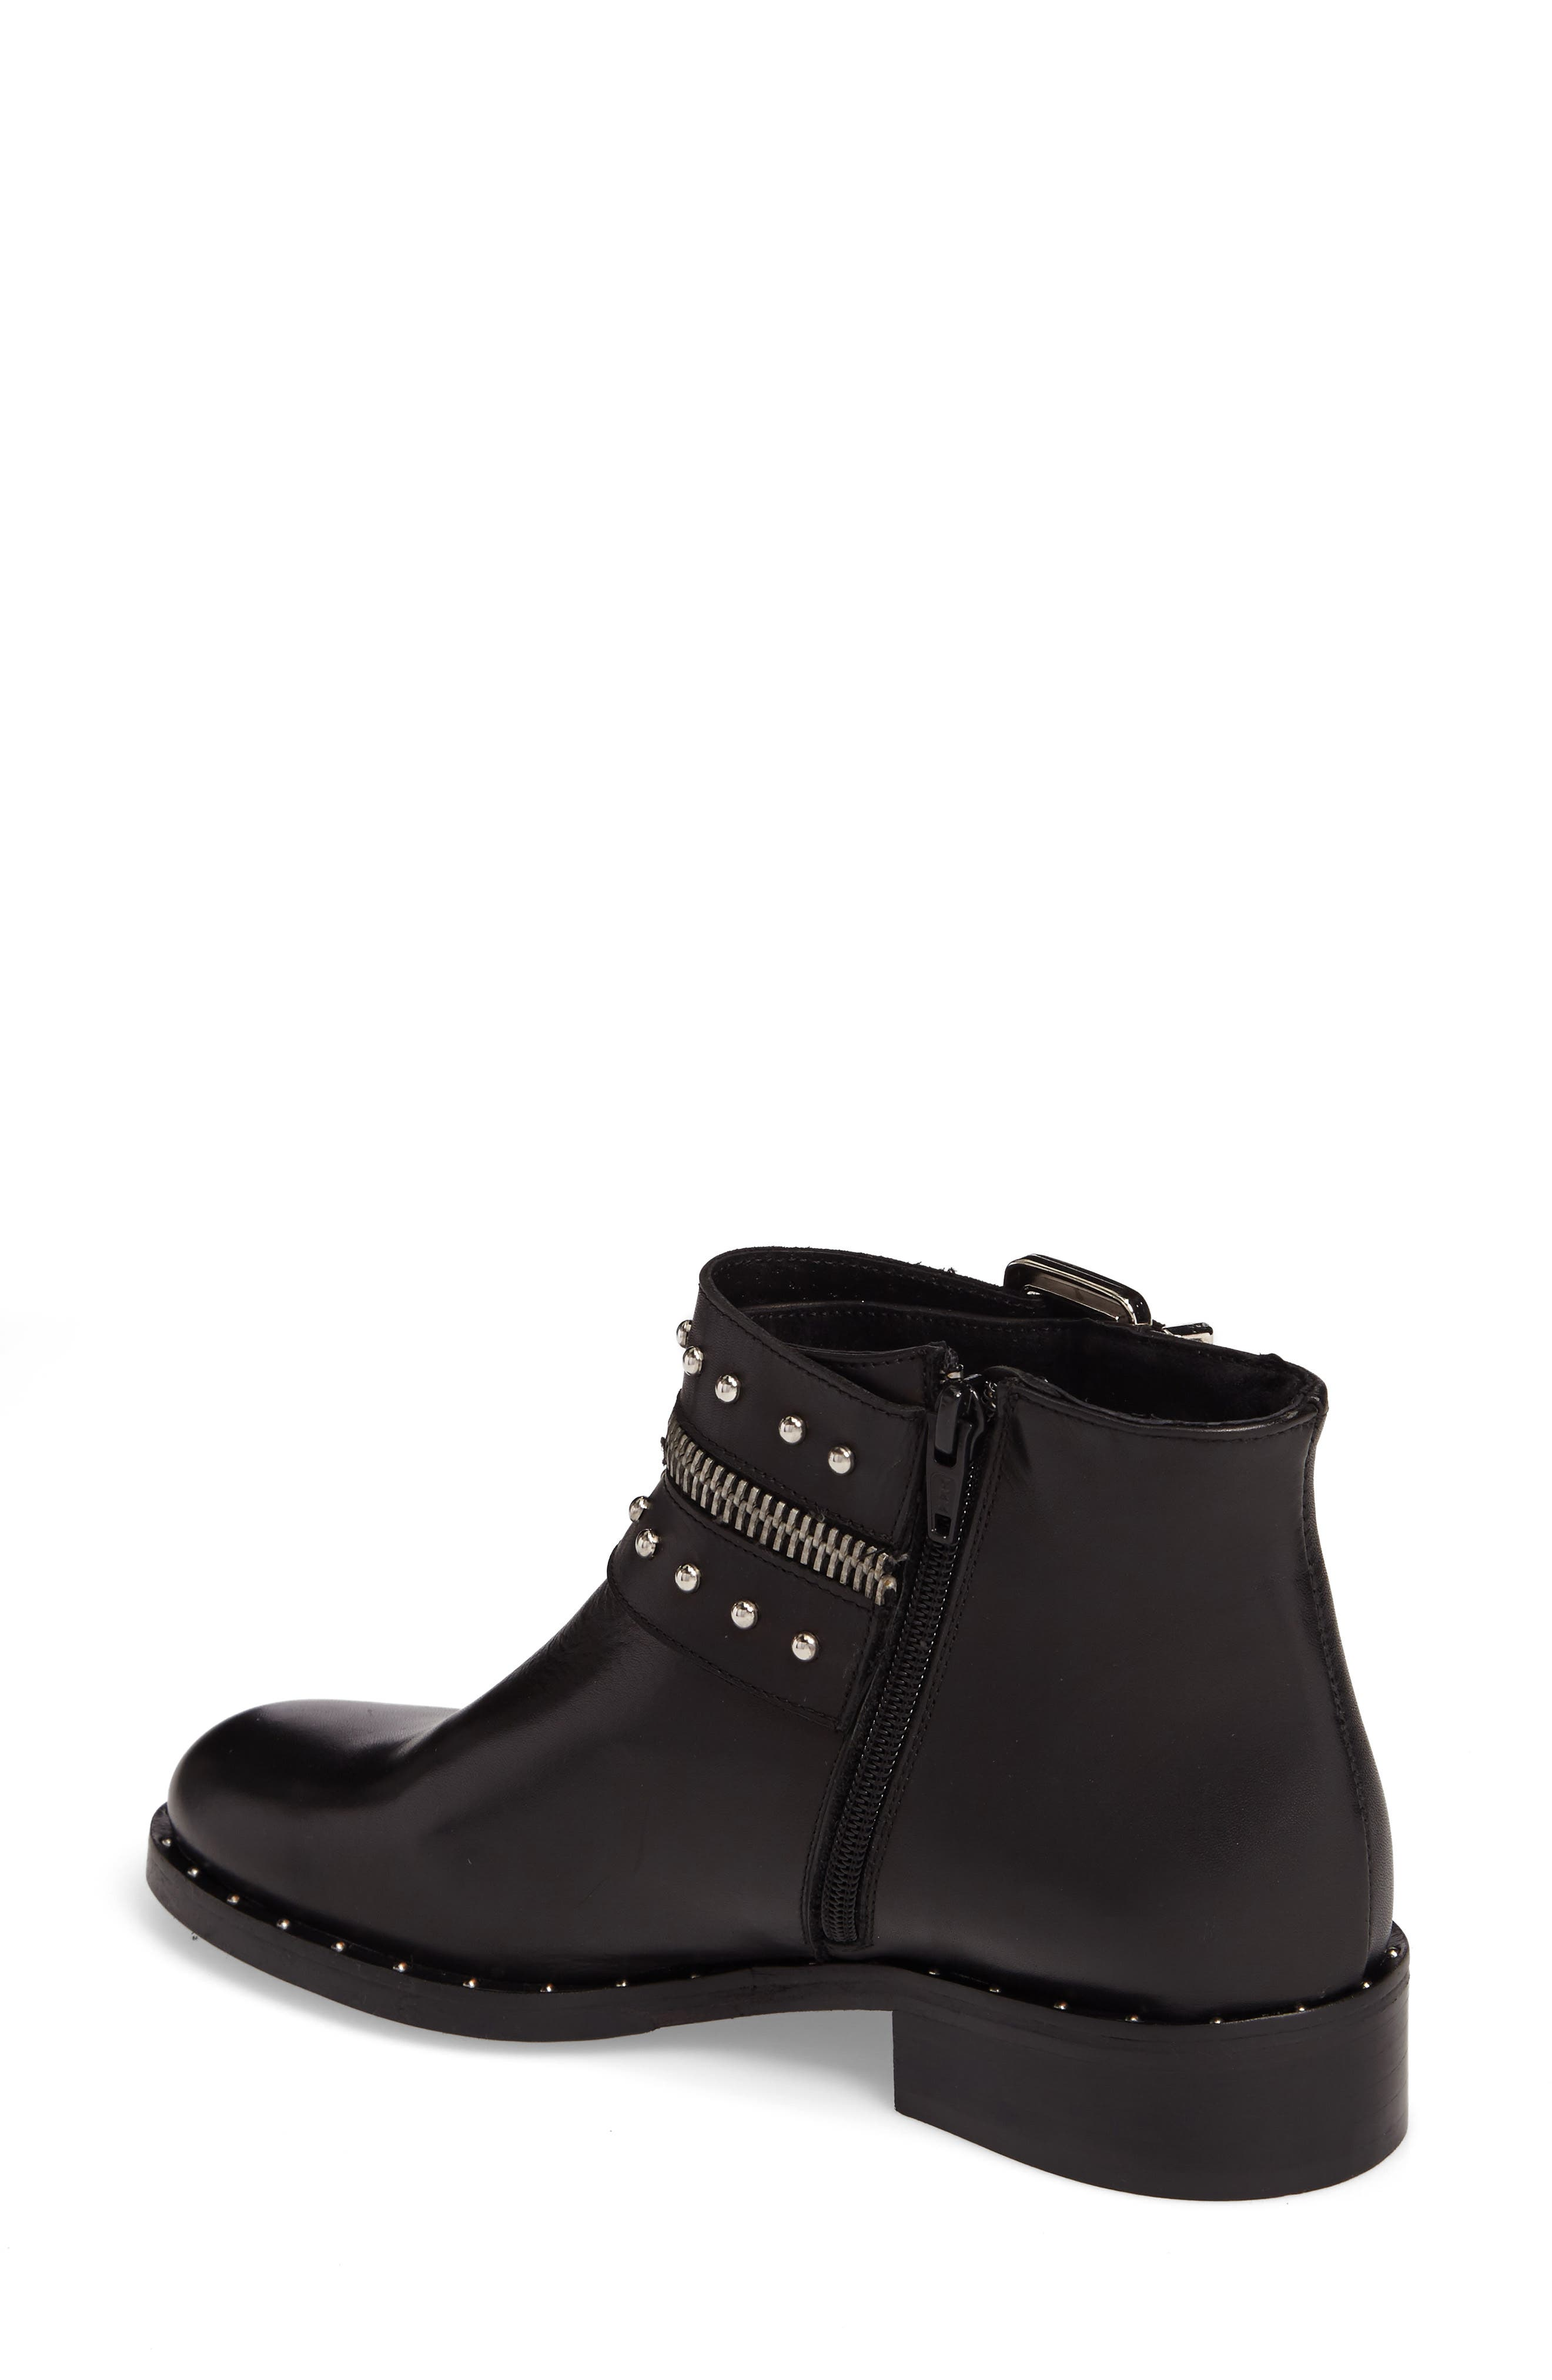 Chief Buckle Bootie,                             Alternate thumbnail 2, color,                             001